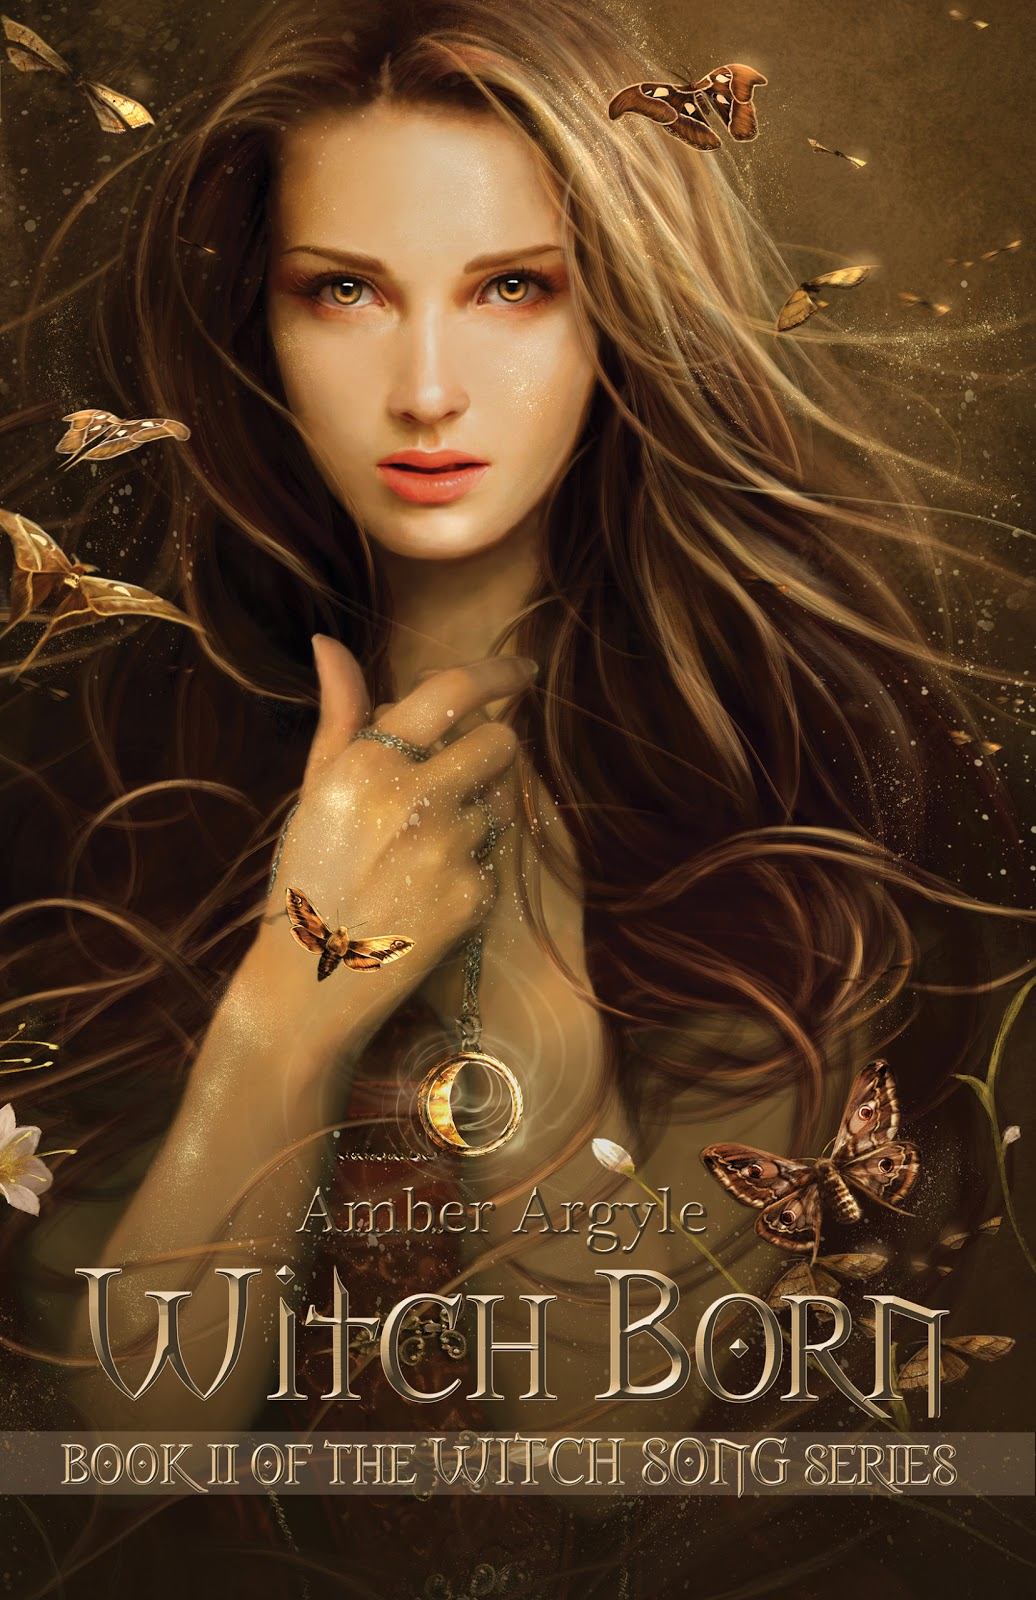 Cover Art for Witch Born by Amber Argyle